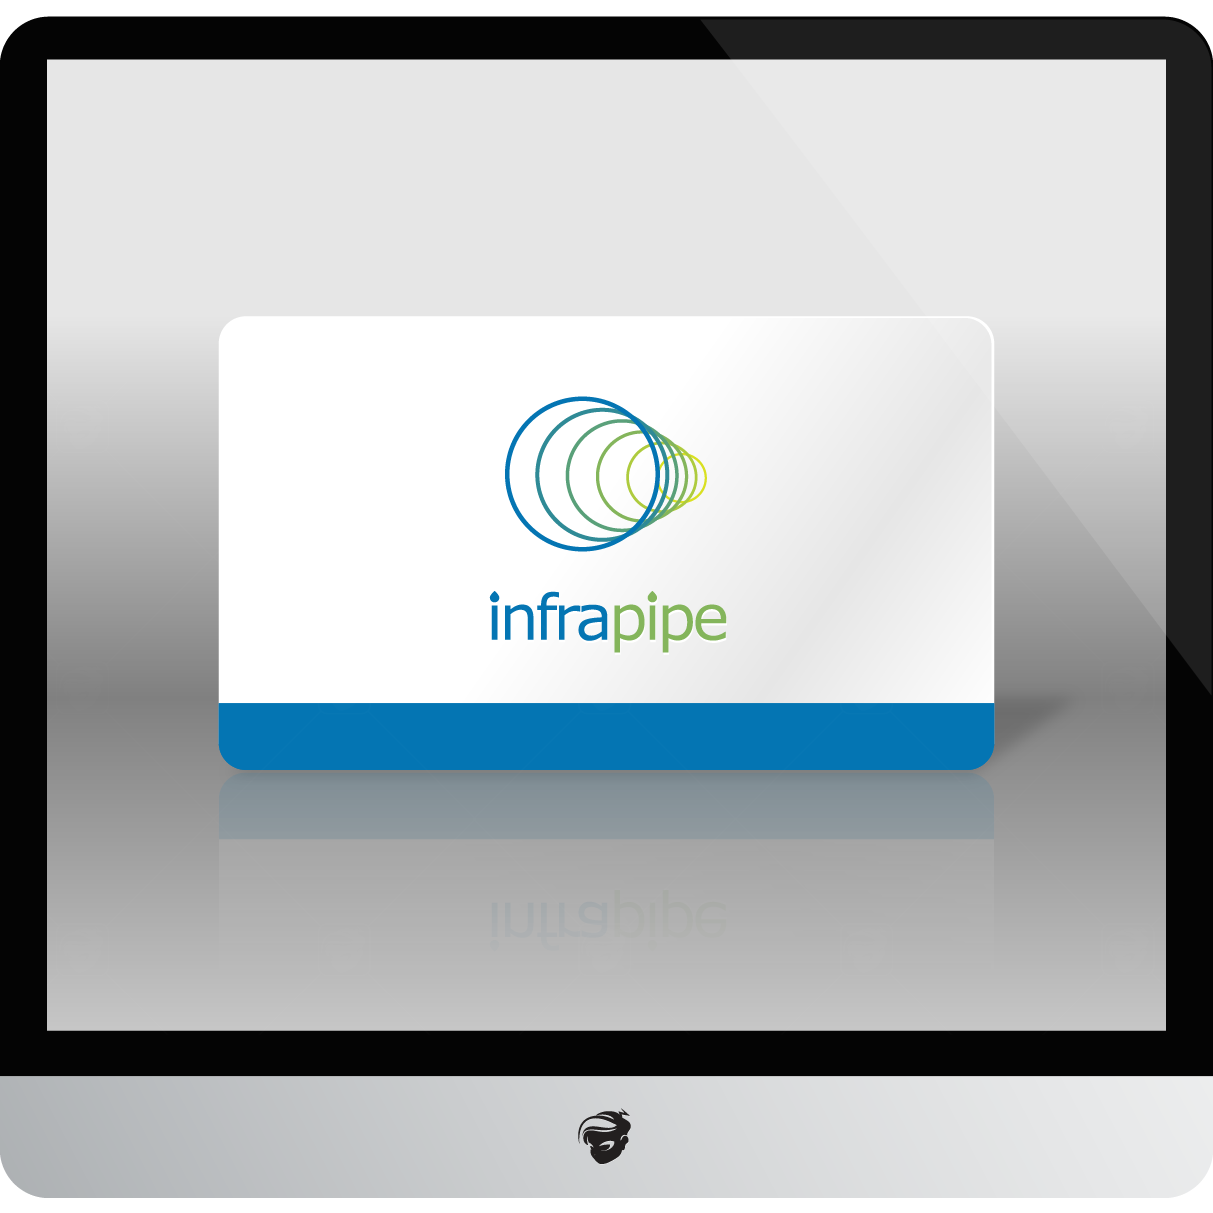 Logo Design by zesthar - Entry No. 165 in the Logo Design Contest Inspiring Logo Design for Infrapipe.